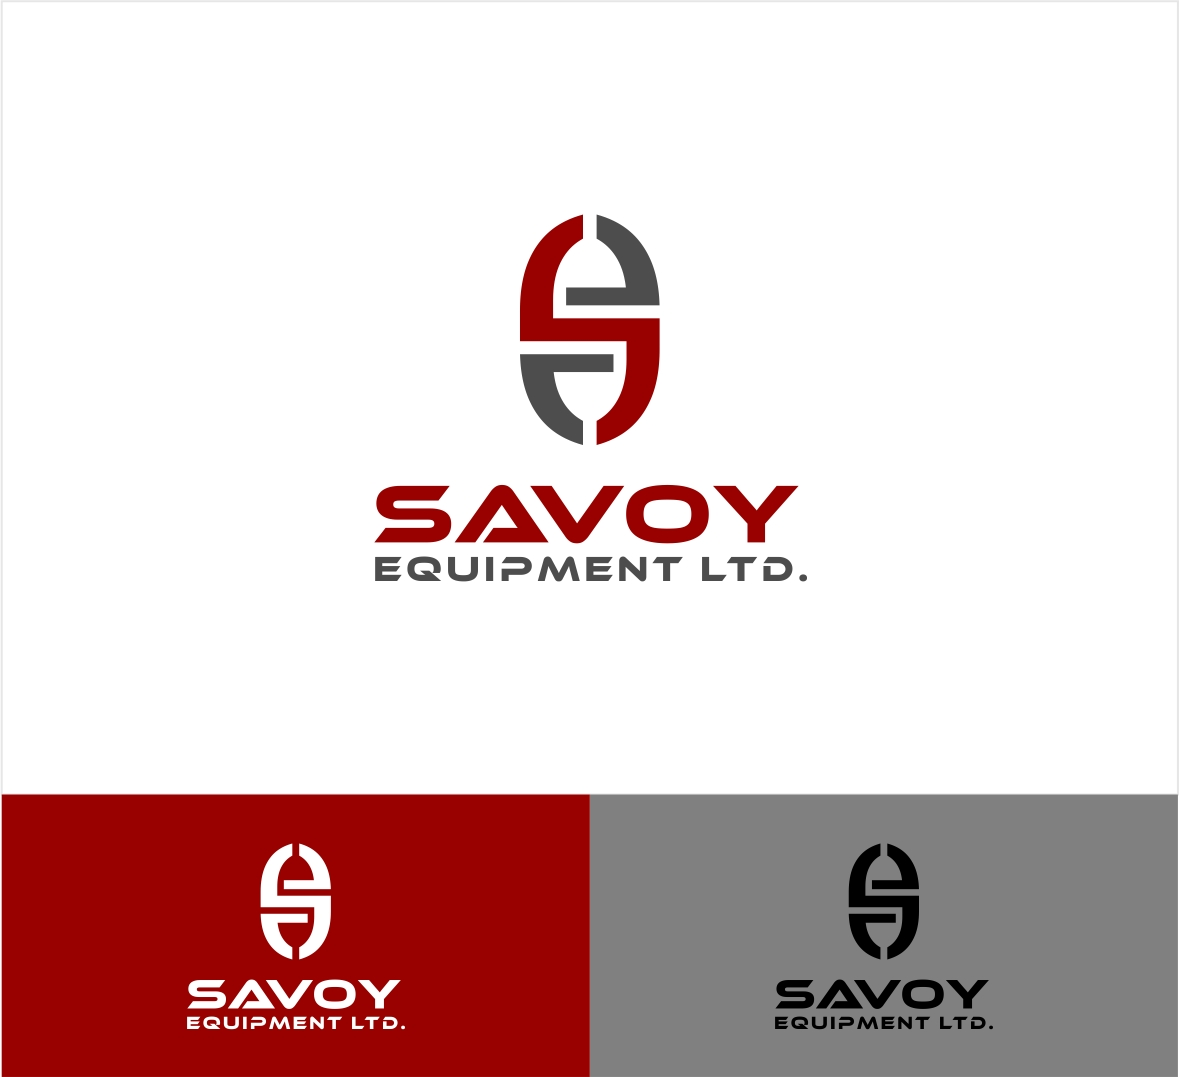 Logo Design by haidu - Entry No. 95 in the Logo Design Contest Inspiring Logo Design for Savoy Equipment Ltd..